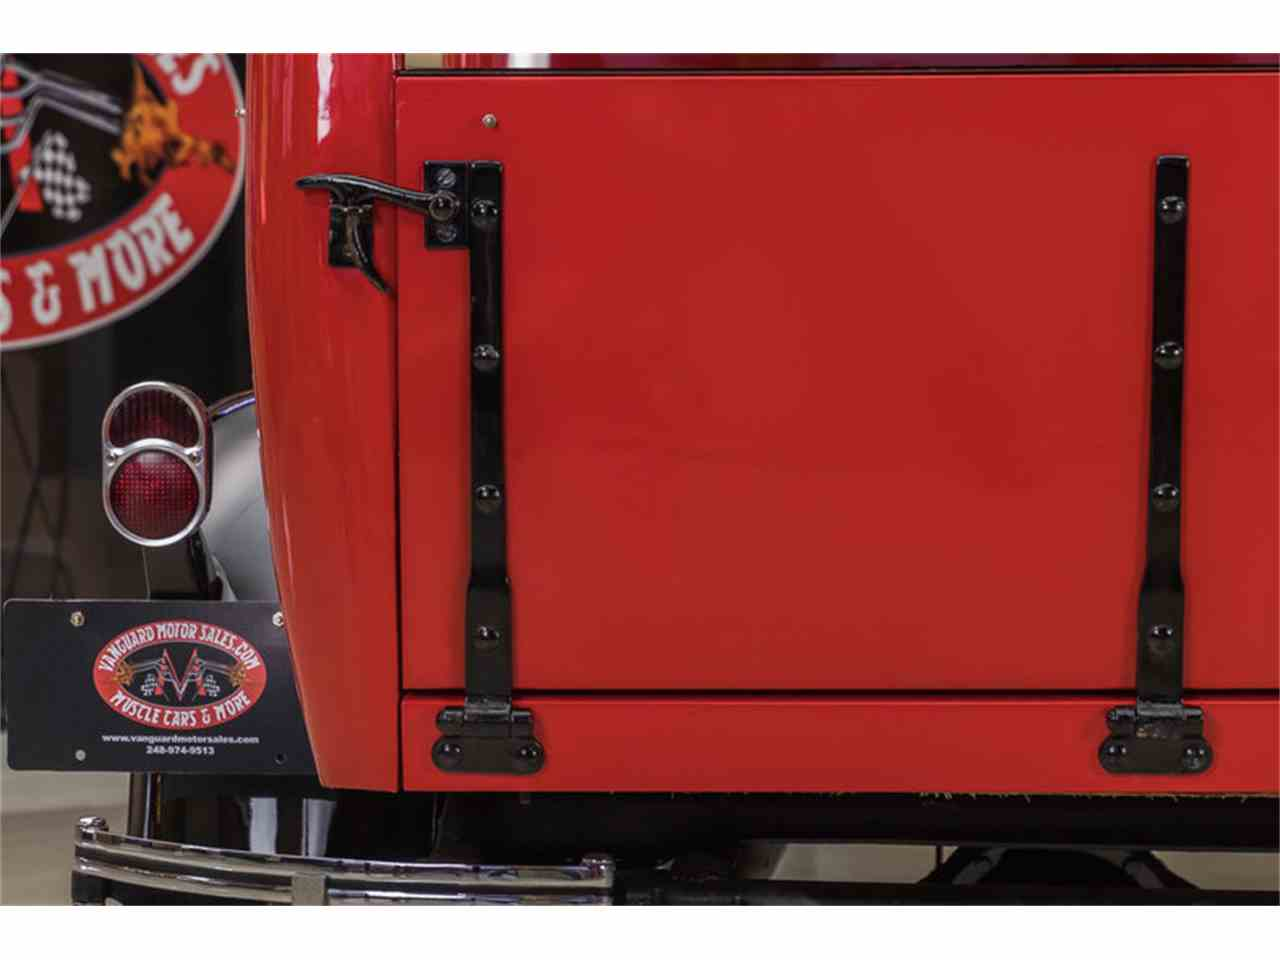 Large Picture of '30 Chevrolet Huckster Truck - $49,900.00 Offered by Vanguard Motor Sales - L5ME